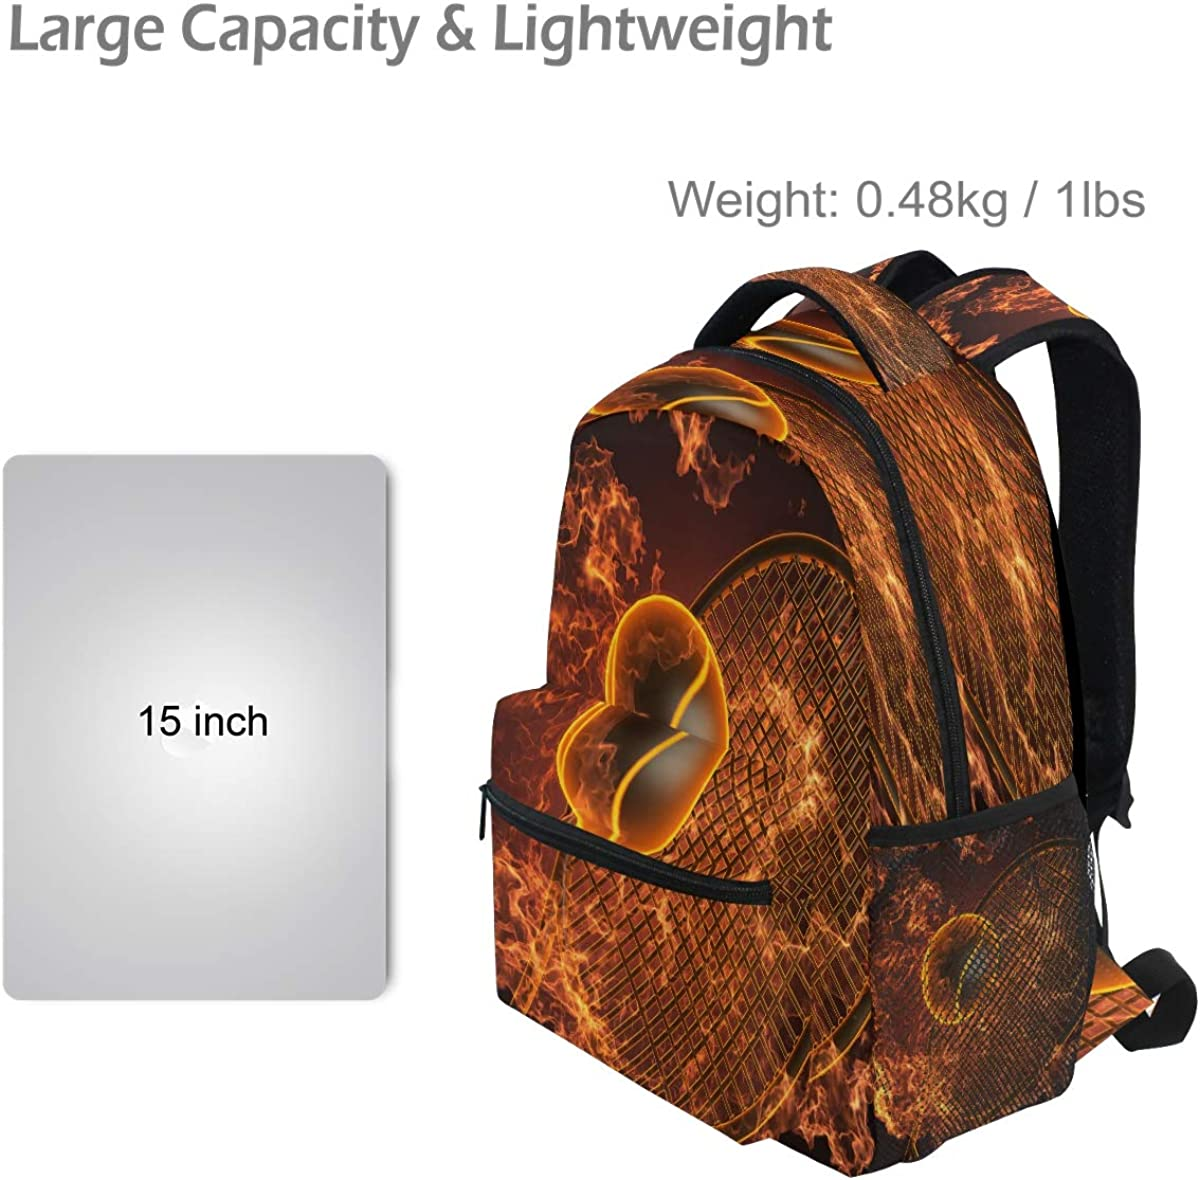 Laptop Backpack Boys Grils Tennis Racket in Fire Made 3D School Bookbags Computer Daypack for Travel Hiking Camping